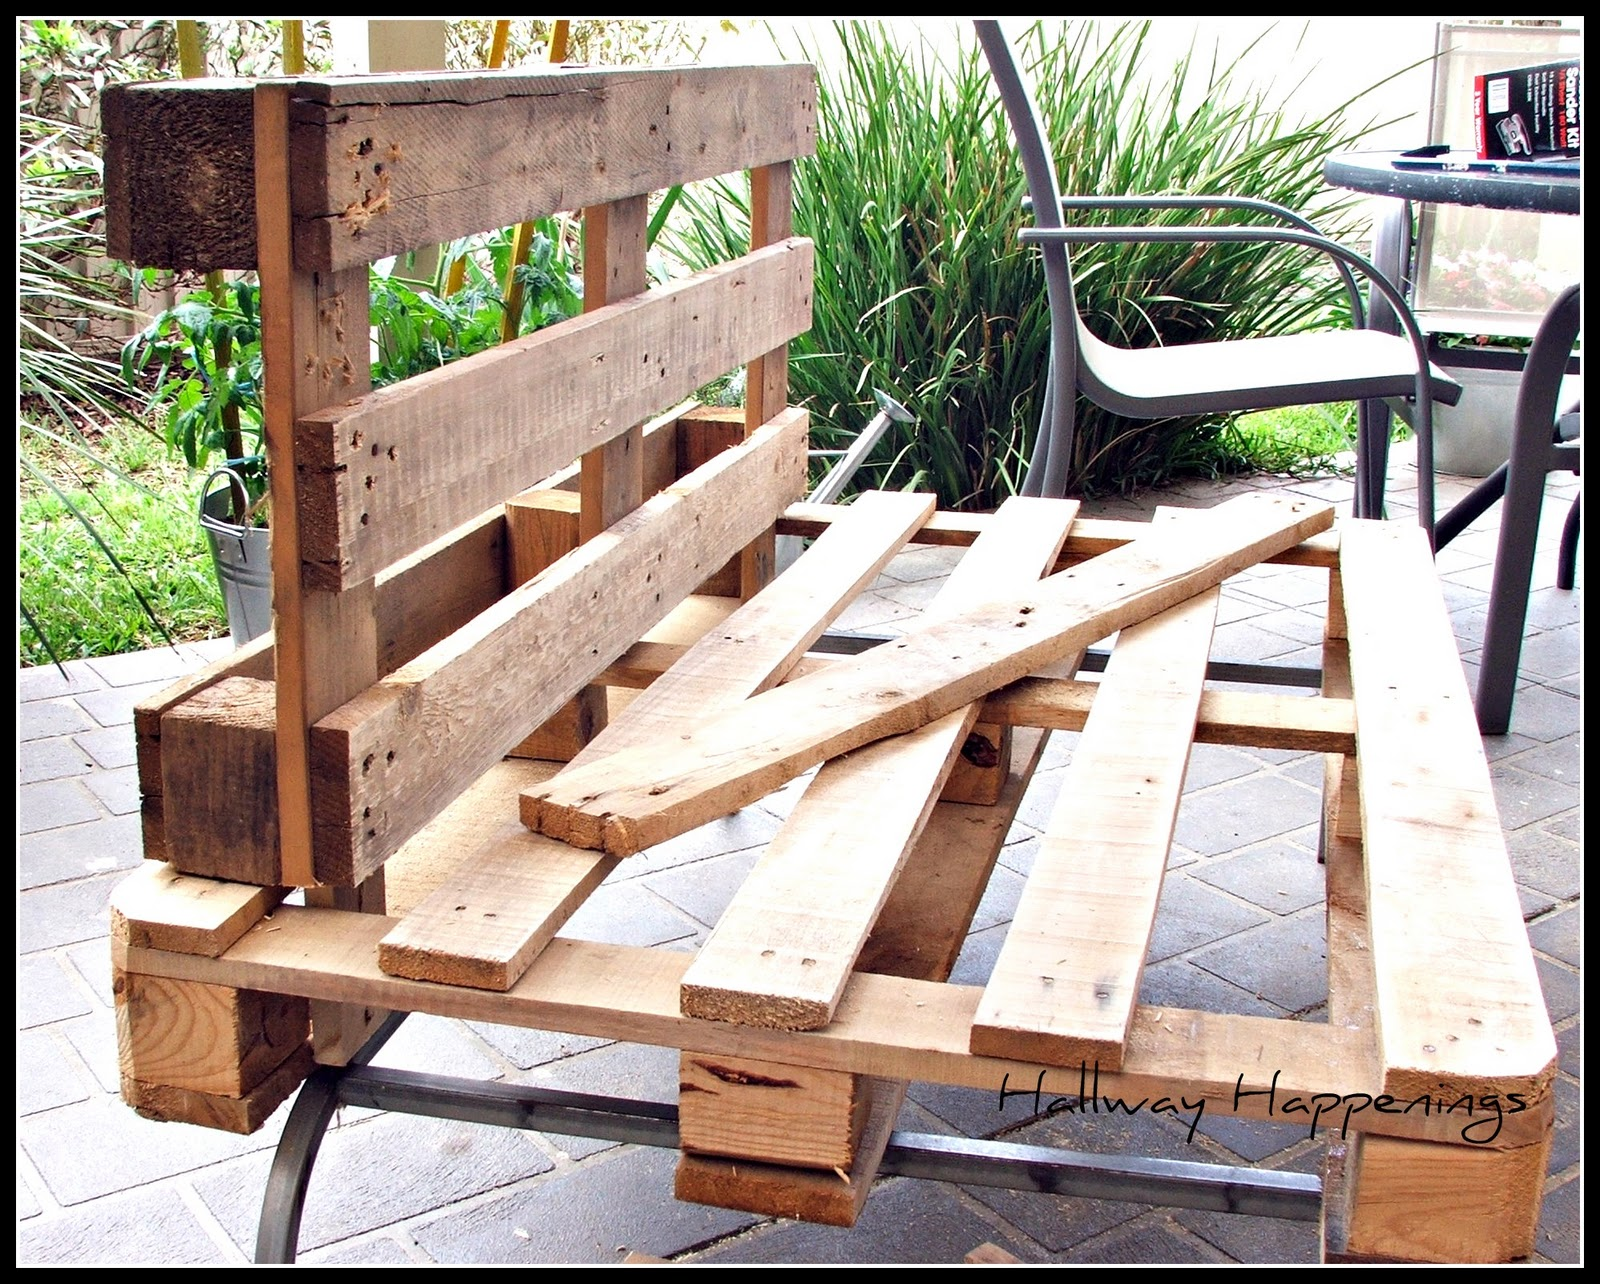 beautifuldesignns Outdoor Furniture Made Out Pallets